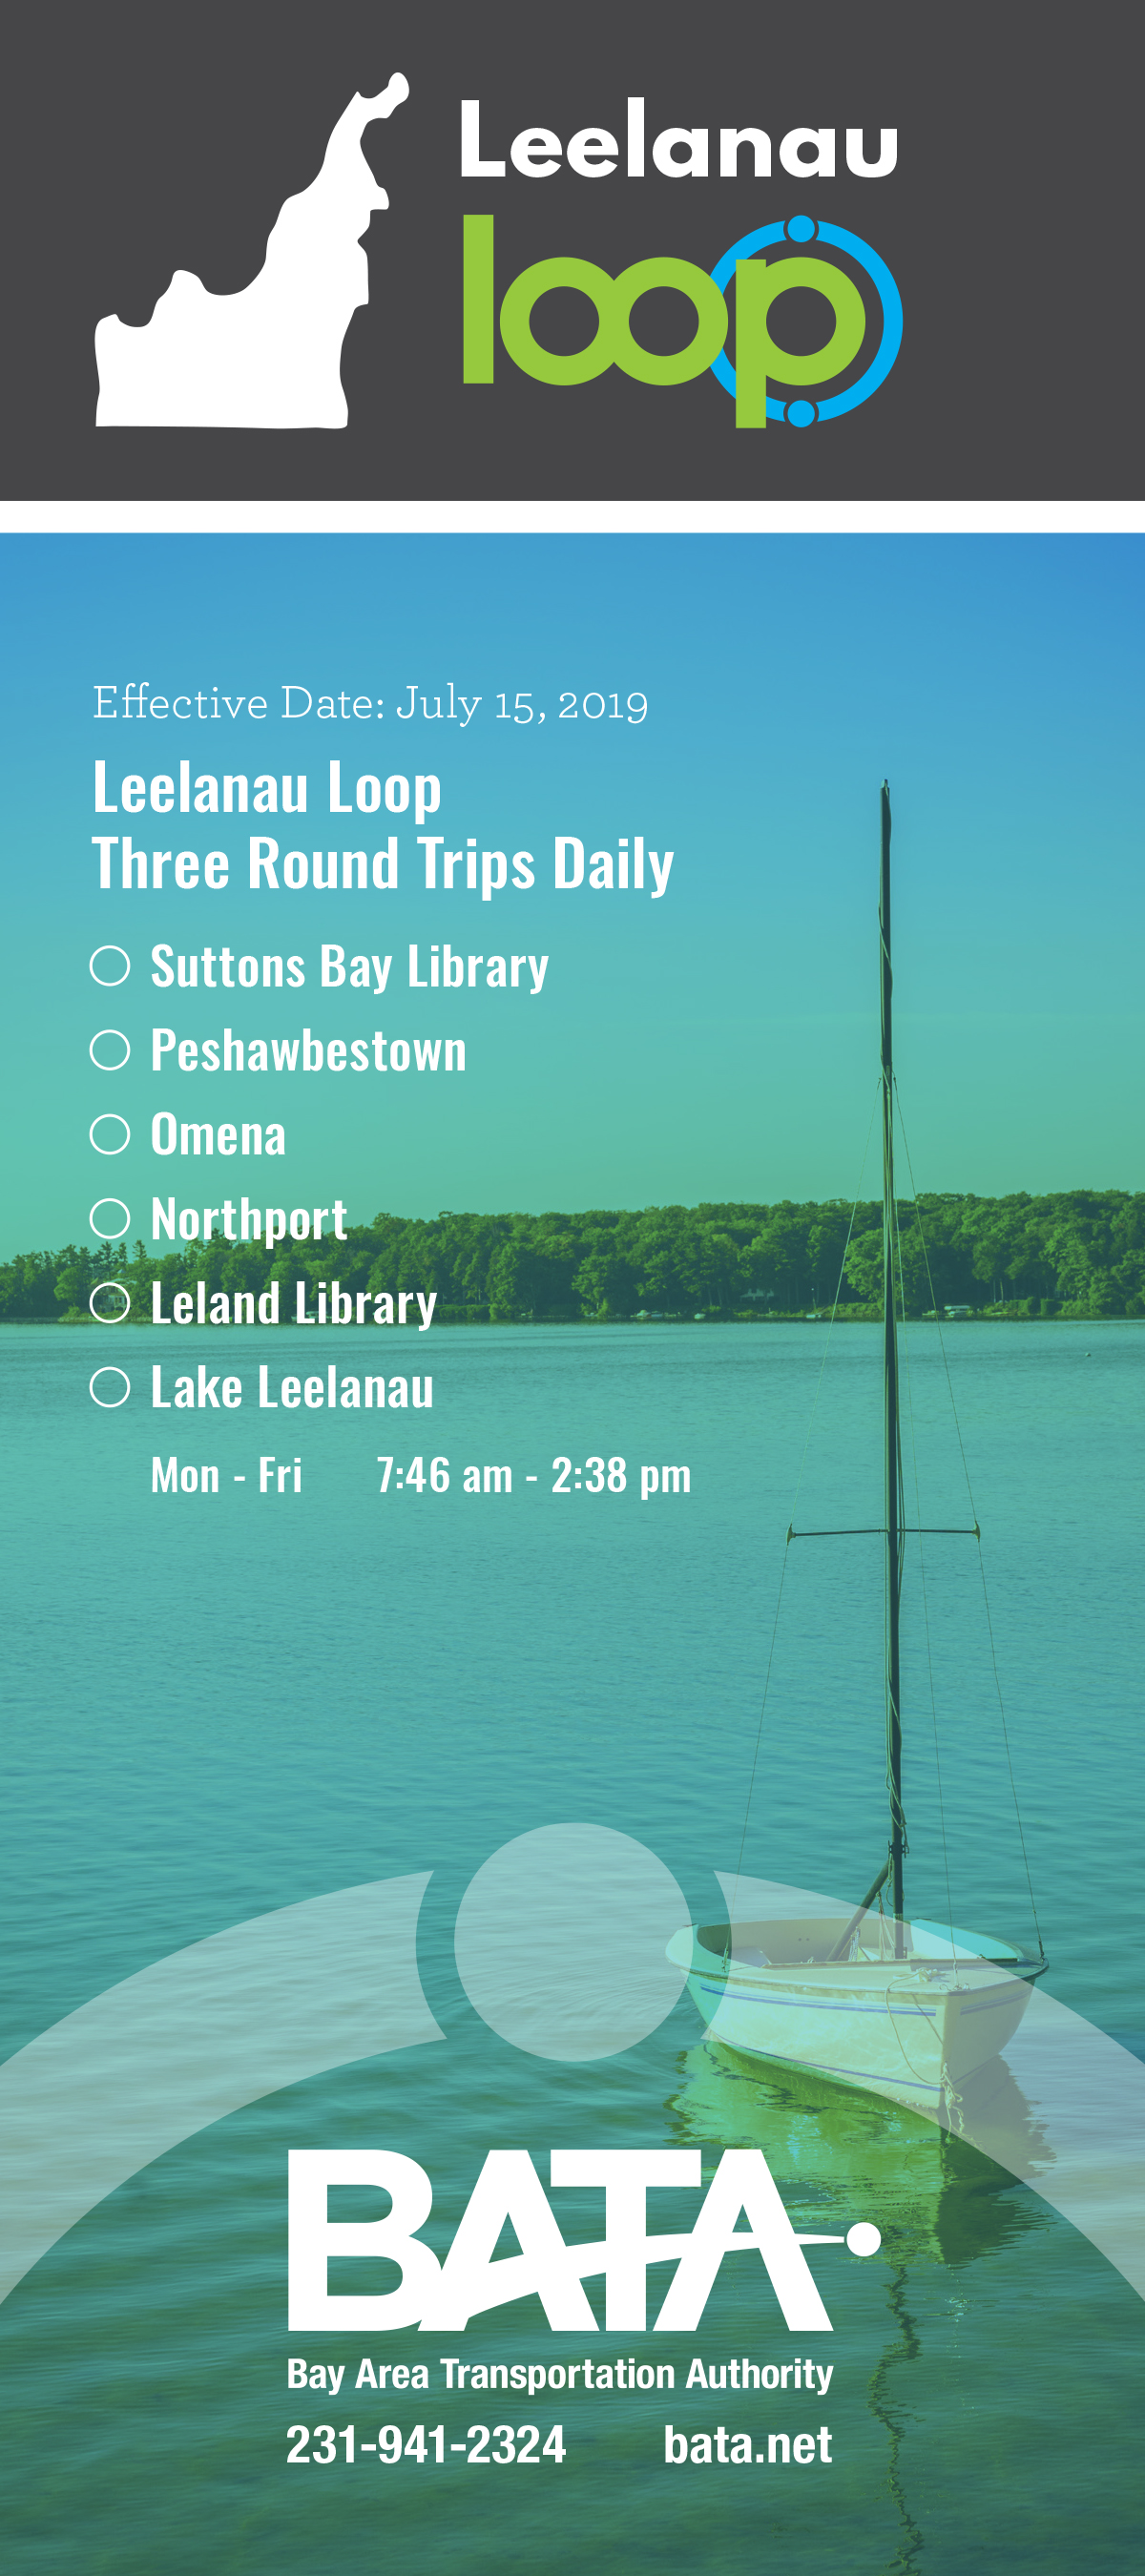 Leelanau Loop Three Round Trips daily flyer Northern Michigan Bay Area Transportation Authority